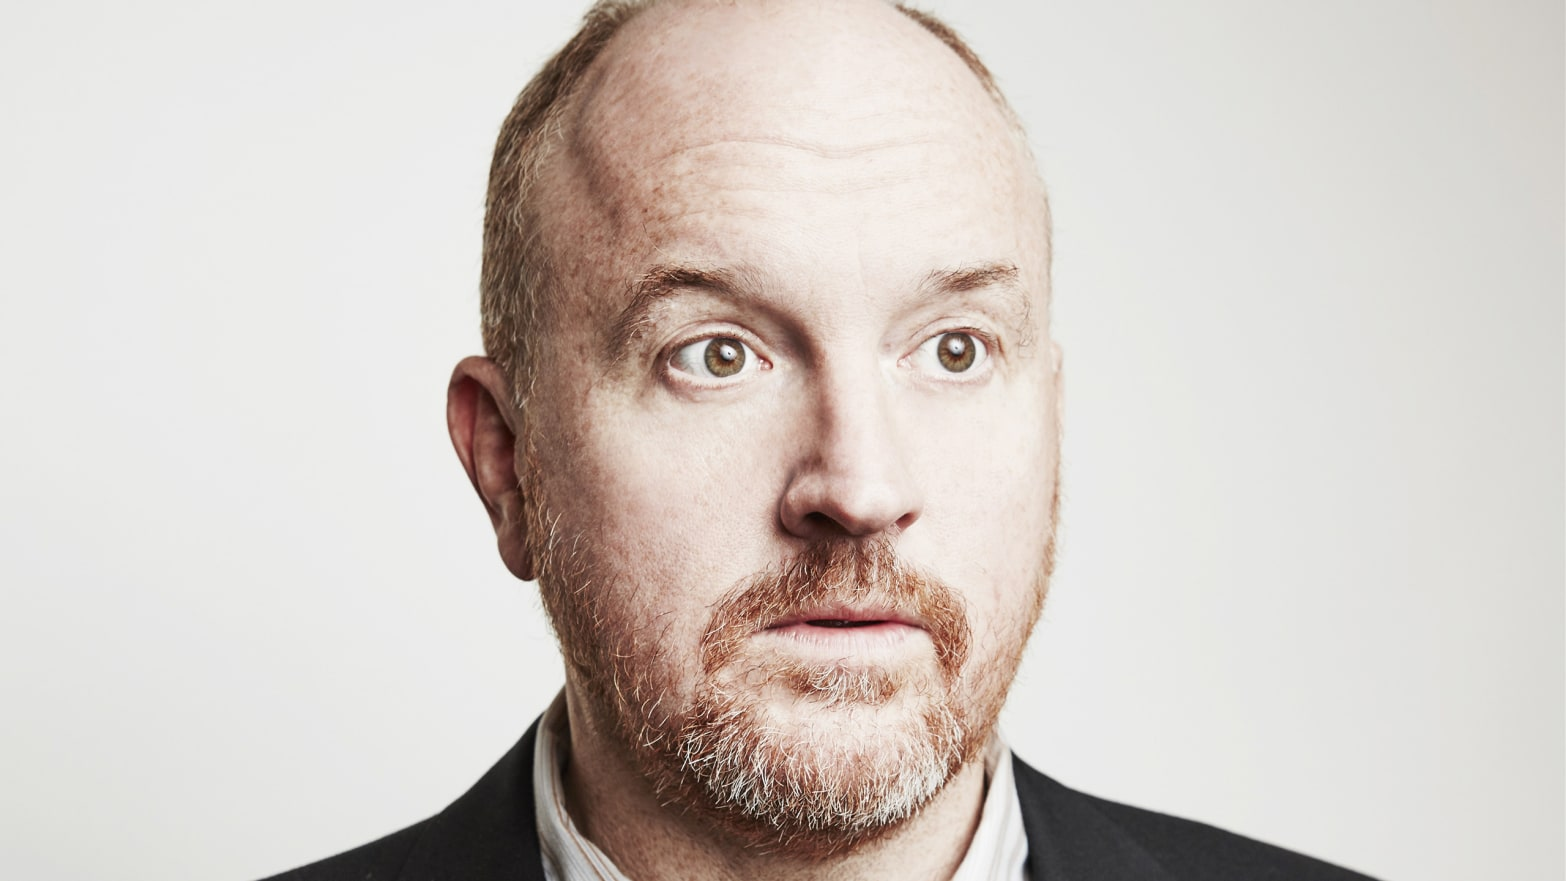 Louis C.K. of FX's 'Baskets' poses in the Getty Images Portrait Studio at the 2016 Winter Television Critics Association press tour at the Langham Hotel on January 19, 2016 in Pasadena, California.